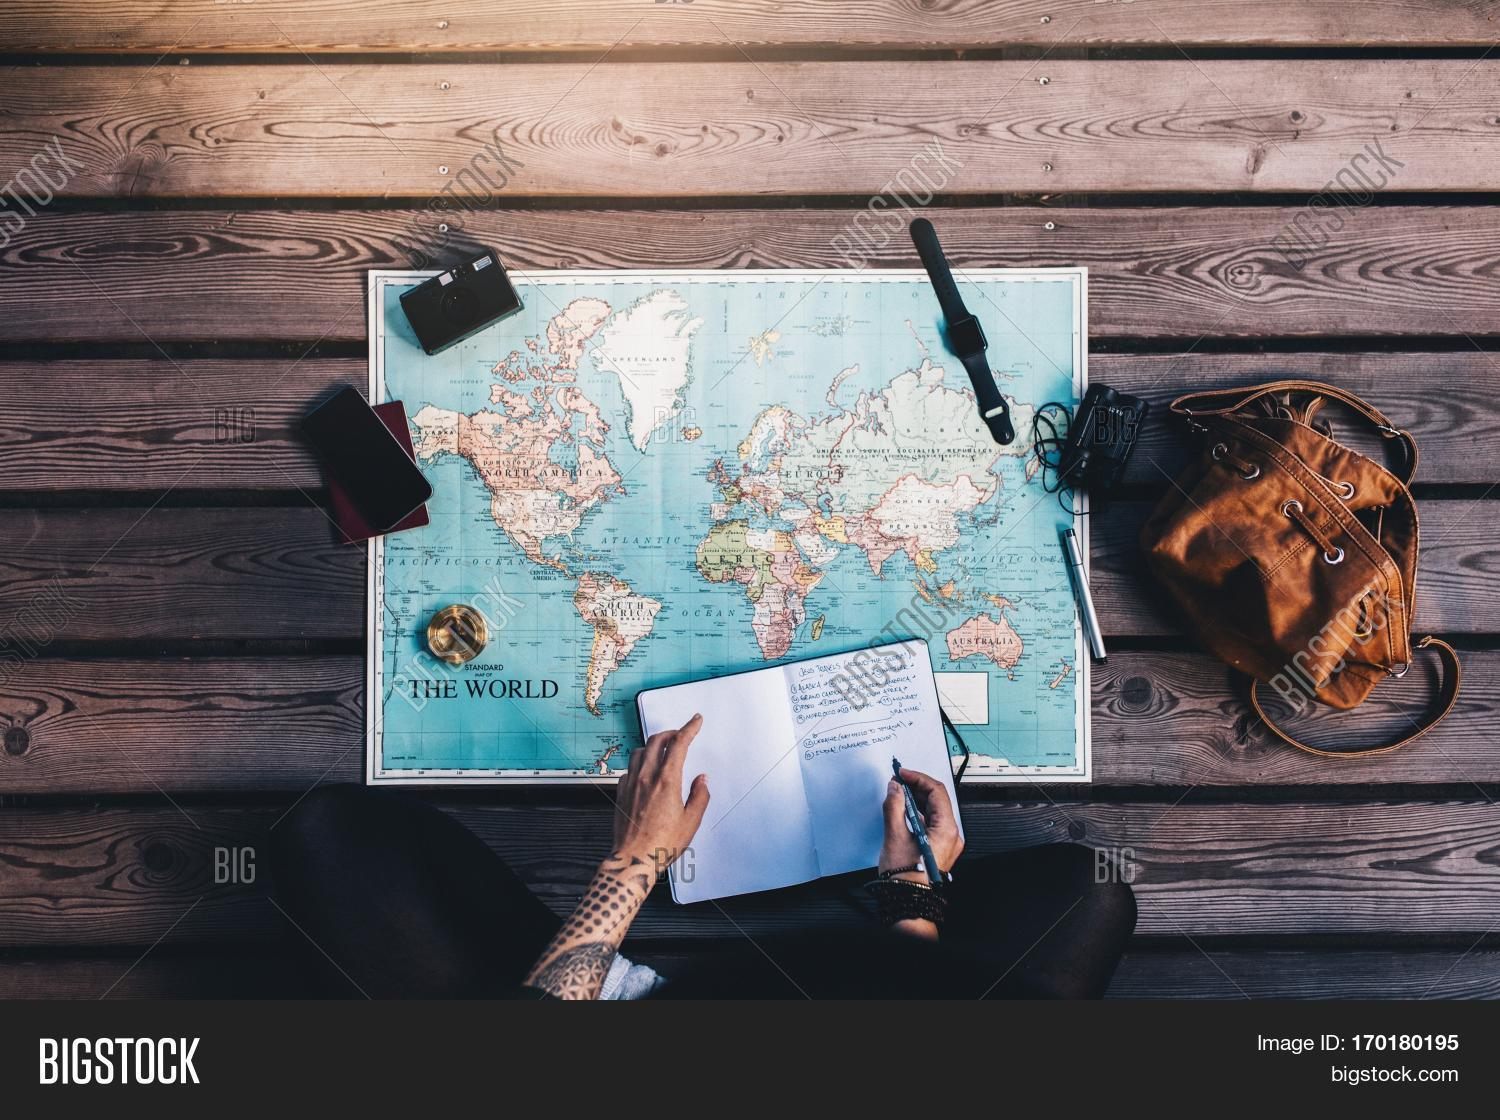 Imagen y foto young woman making prueba gratis bigstock young woman making notes in diary looking at the world map with travel accessories around gumiabroncs Image collections